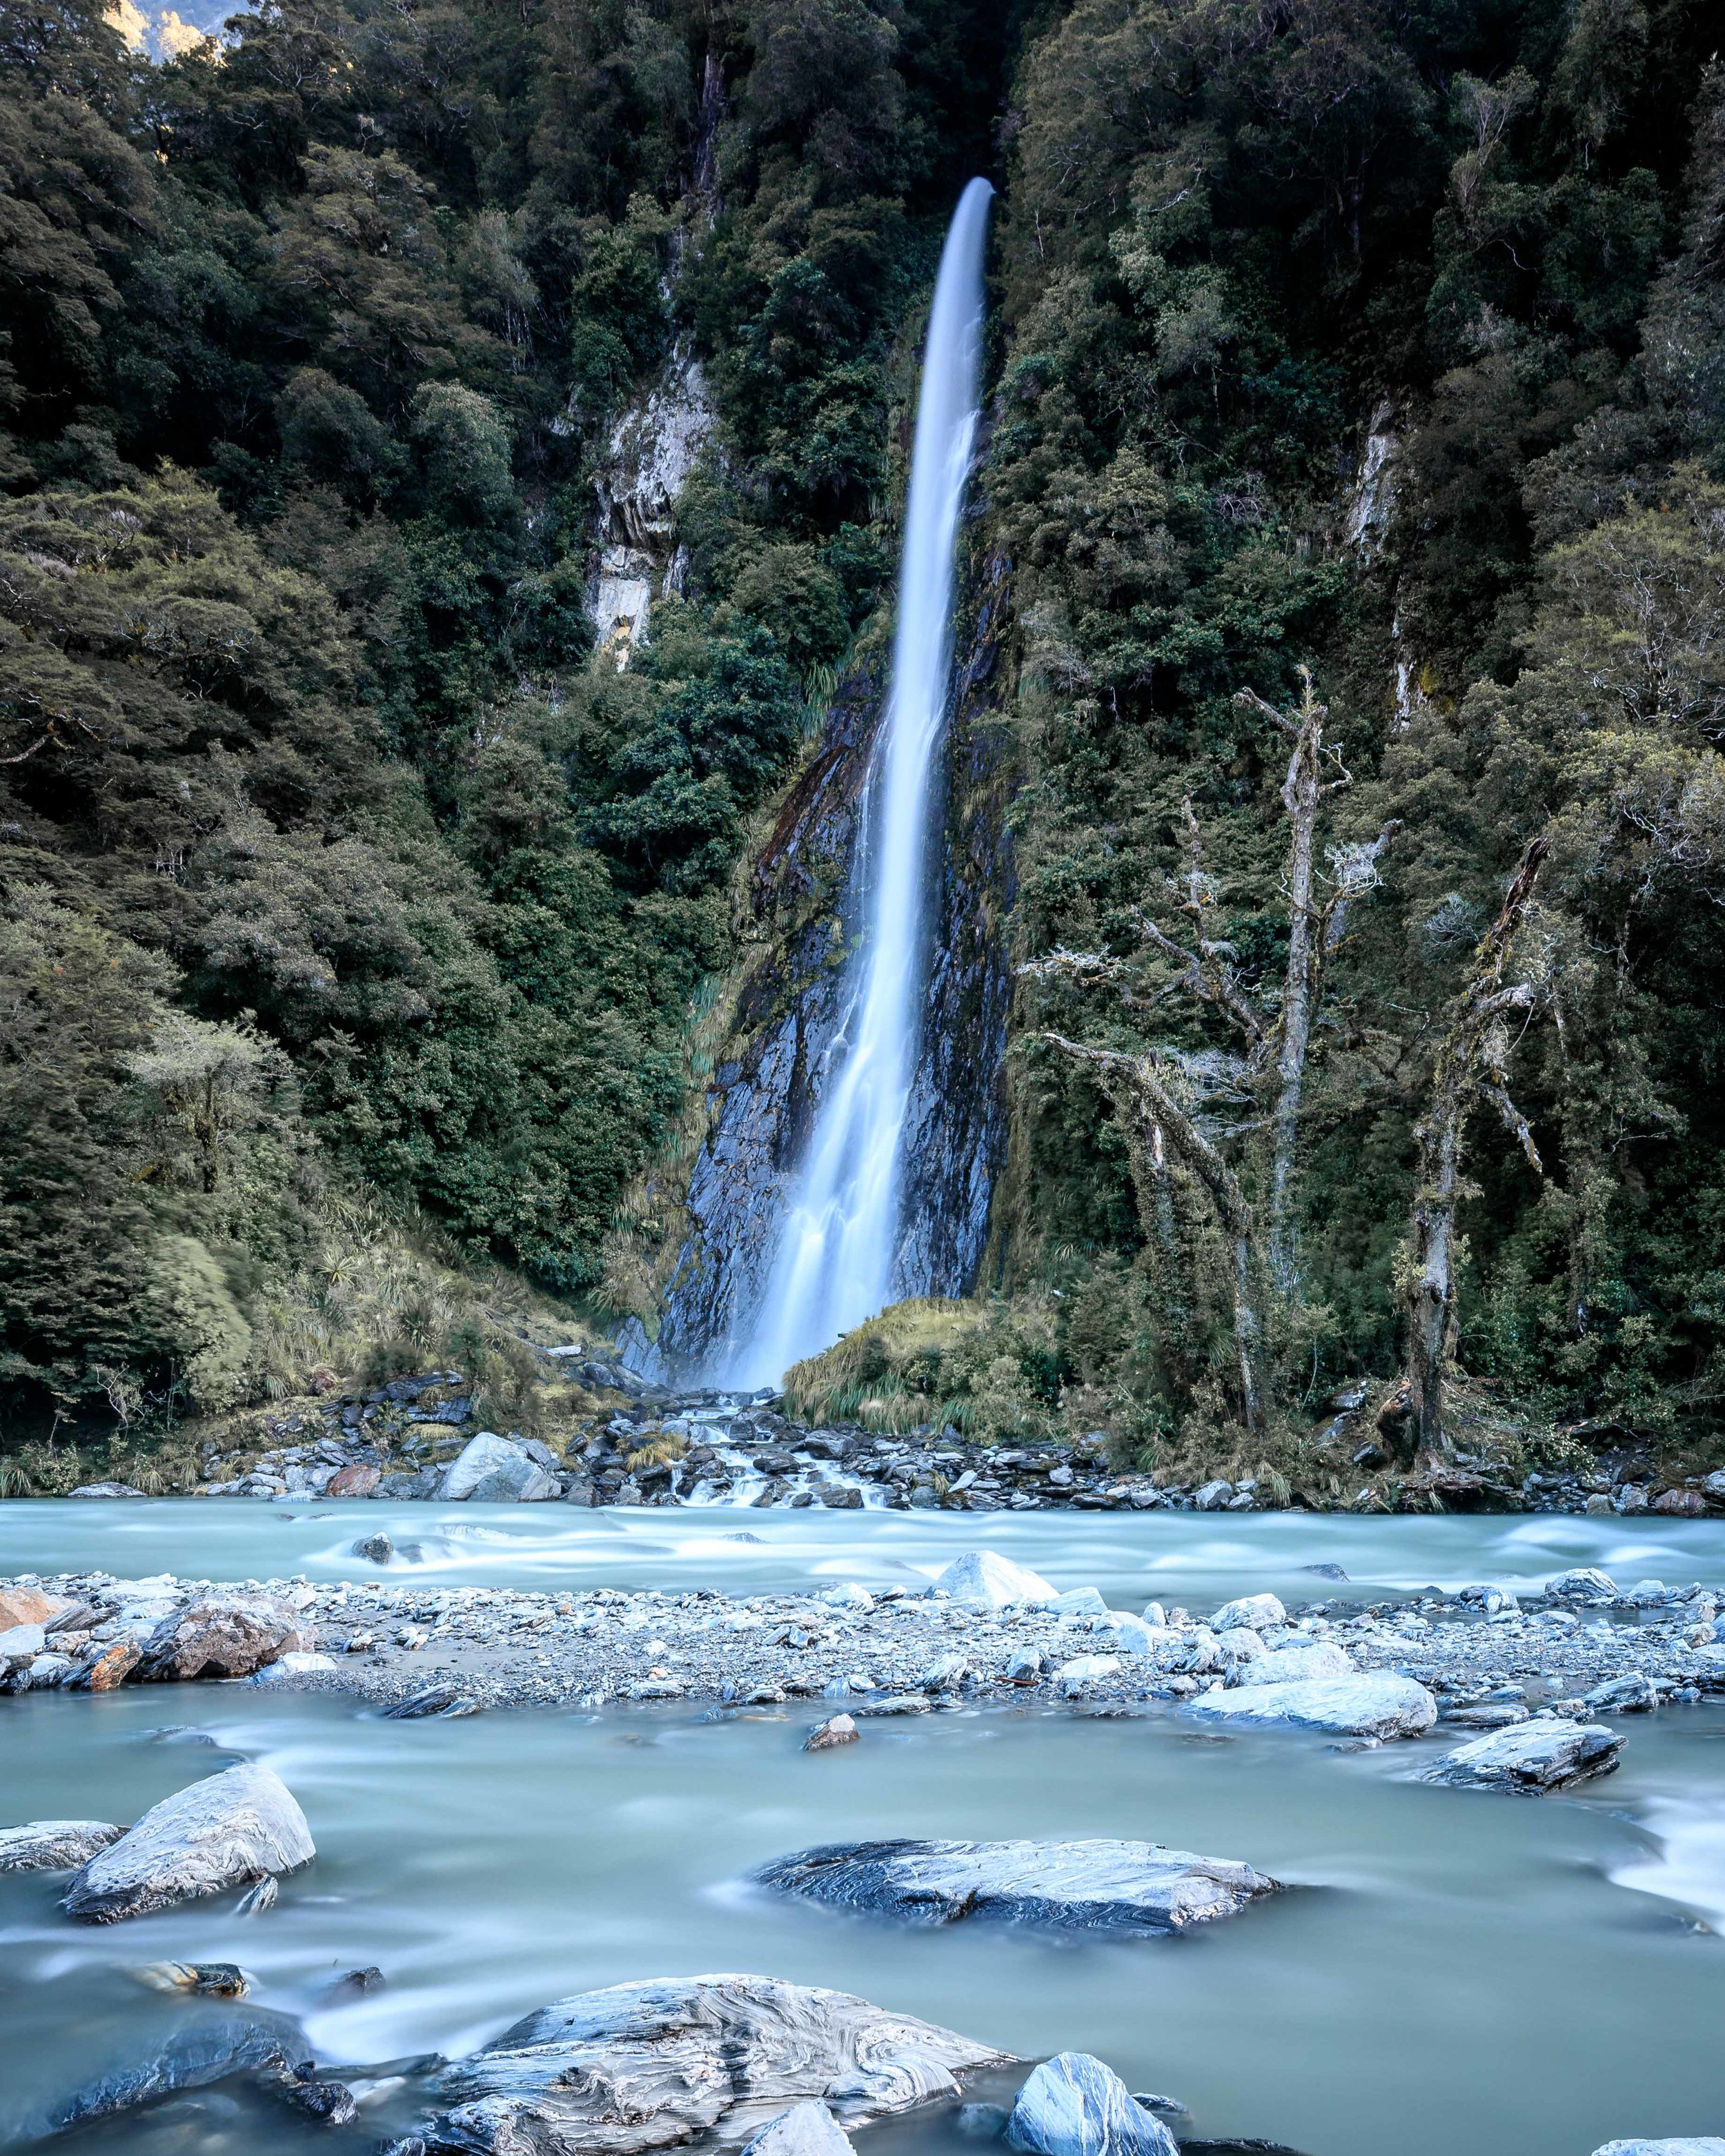 Thunder Creek Falls. Put this anywhere else in the world and it would be heaving with people, in NZ it's just another road side stop.